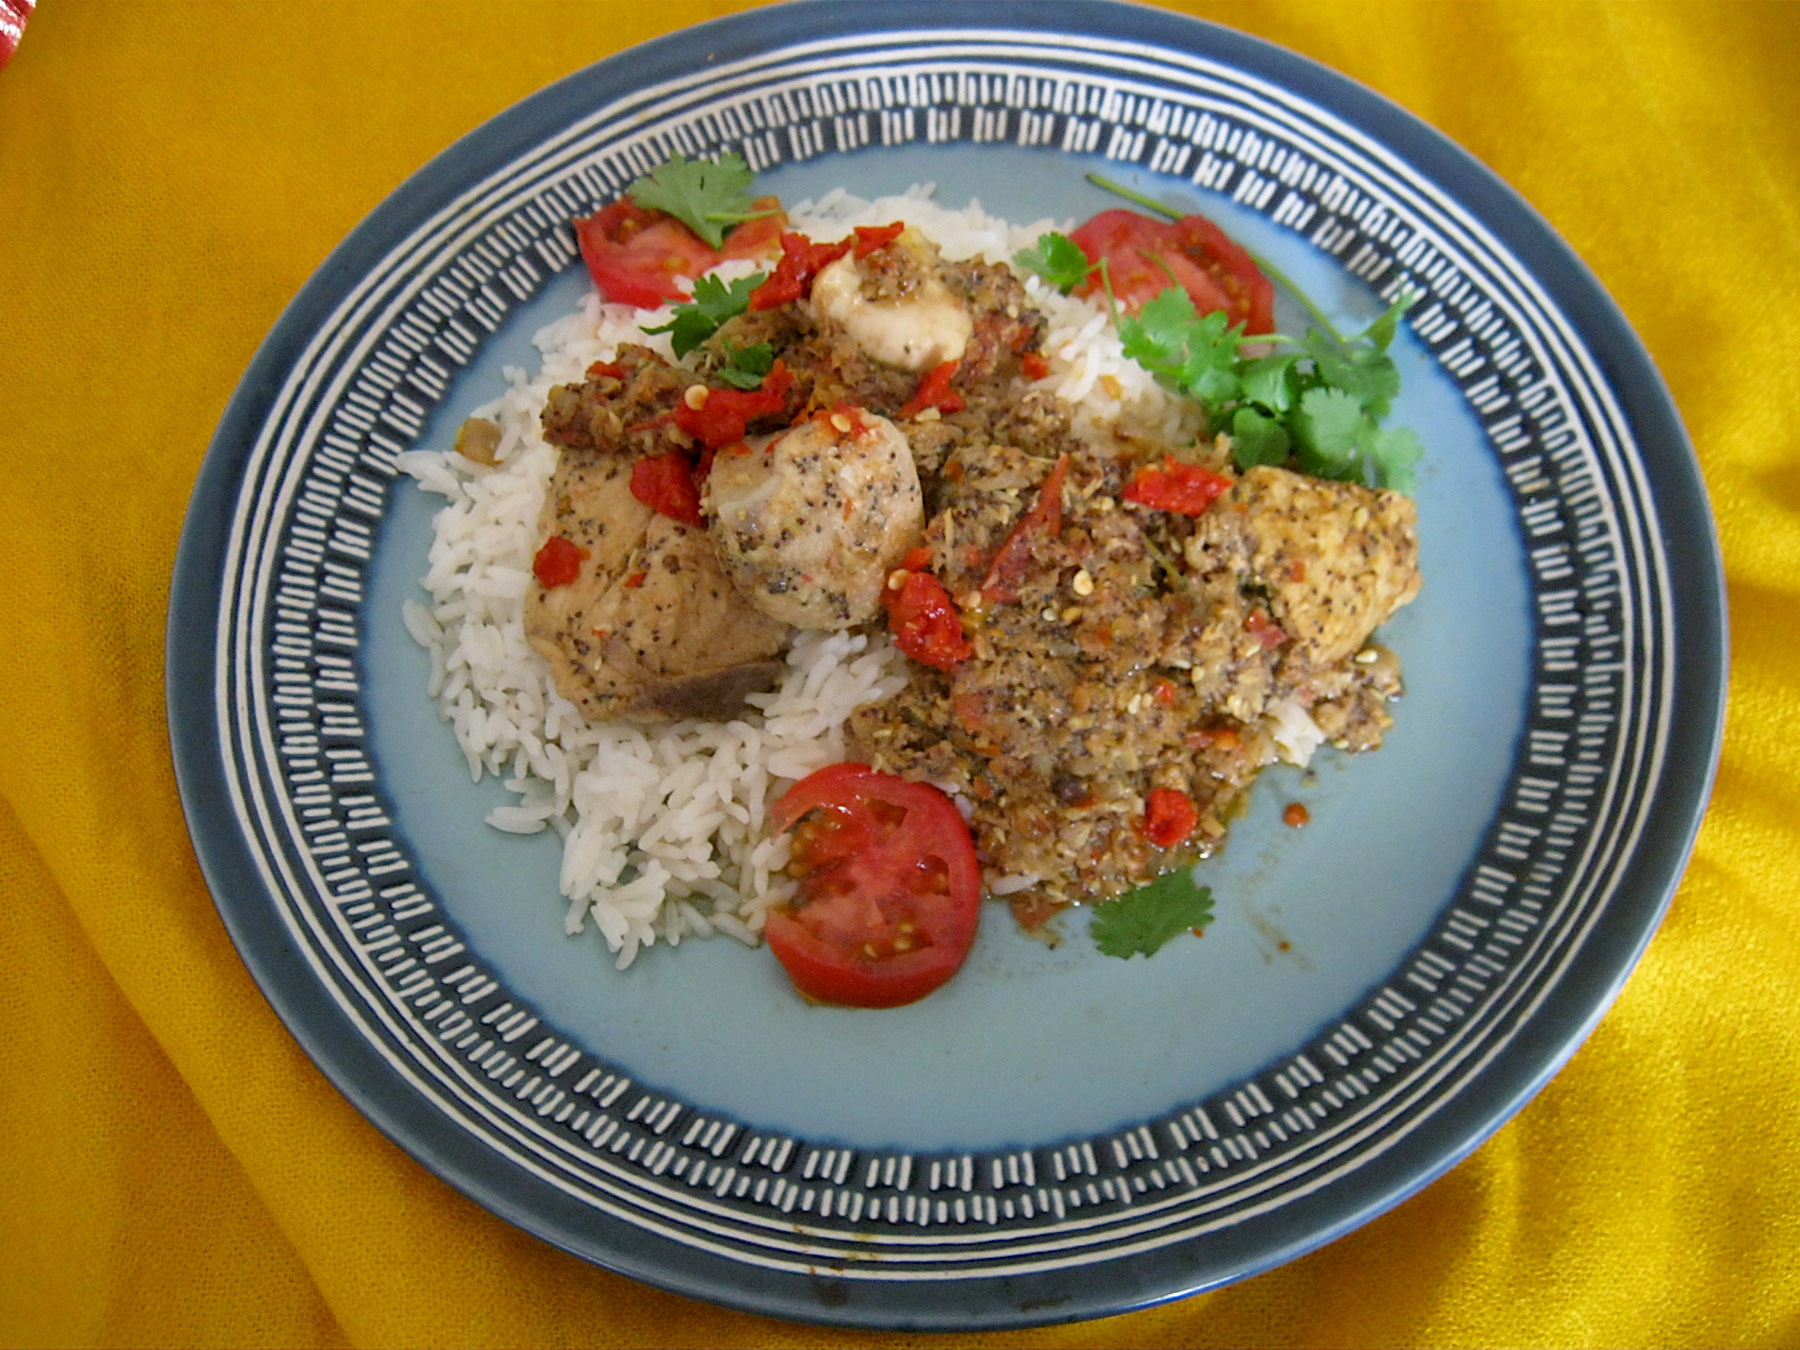 Kolhapuri chicken with steamed rice on a plate